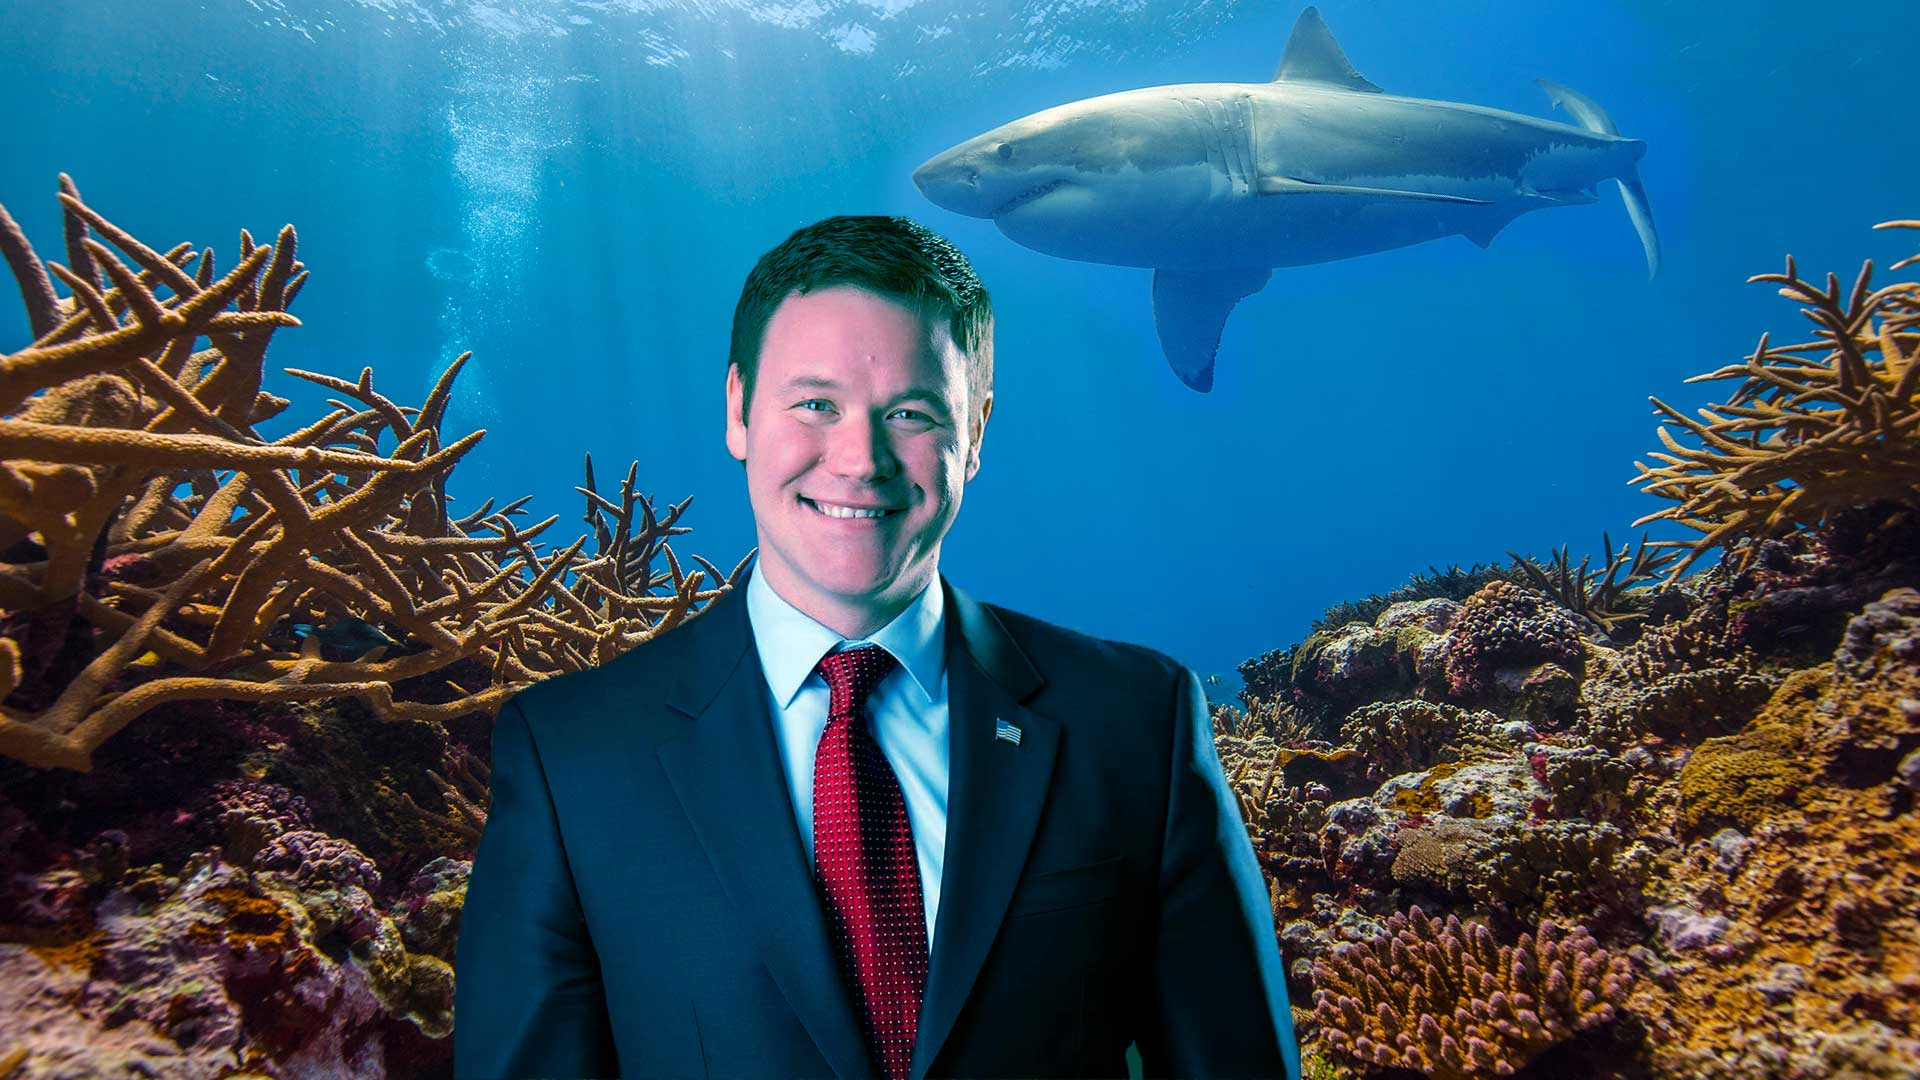 Doug-Wardlow-Returns-to-Bottom-of-the-Ocean-for-1,000-Years-of-Slumber-After-Having-Victory-Spoiled-By-The-Legalize-Weed-Guy.jpg